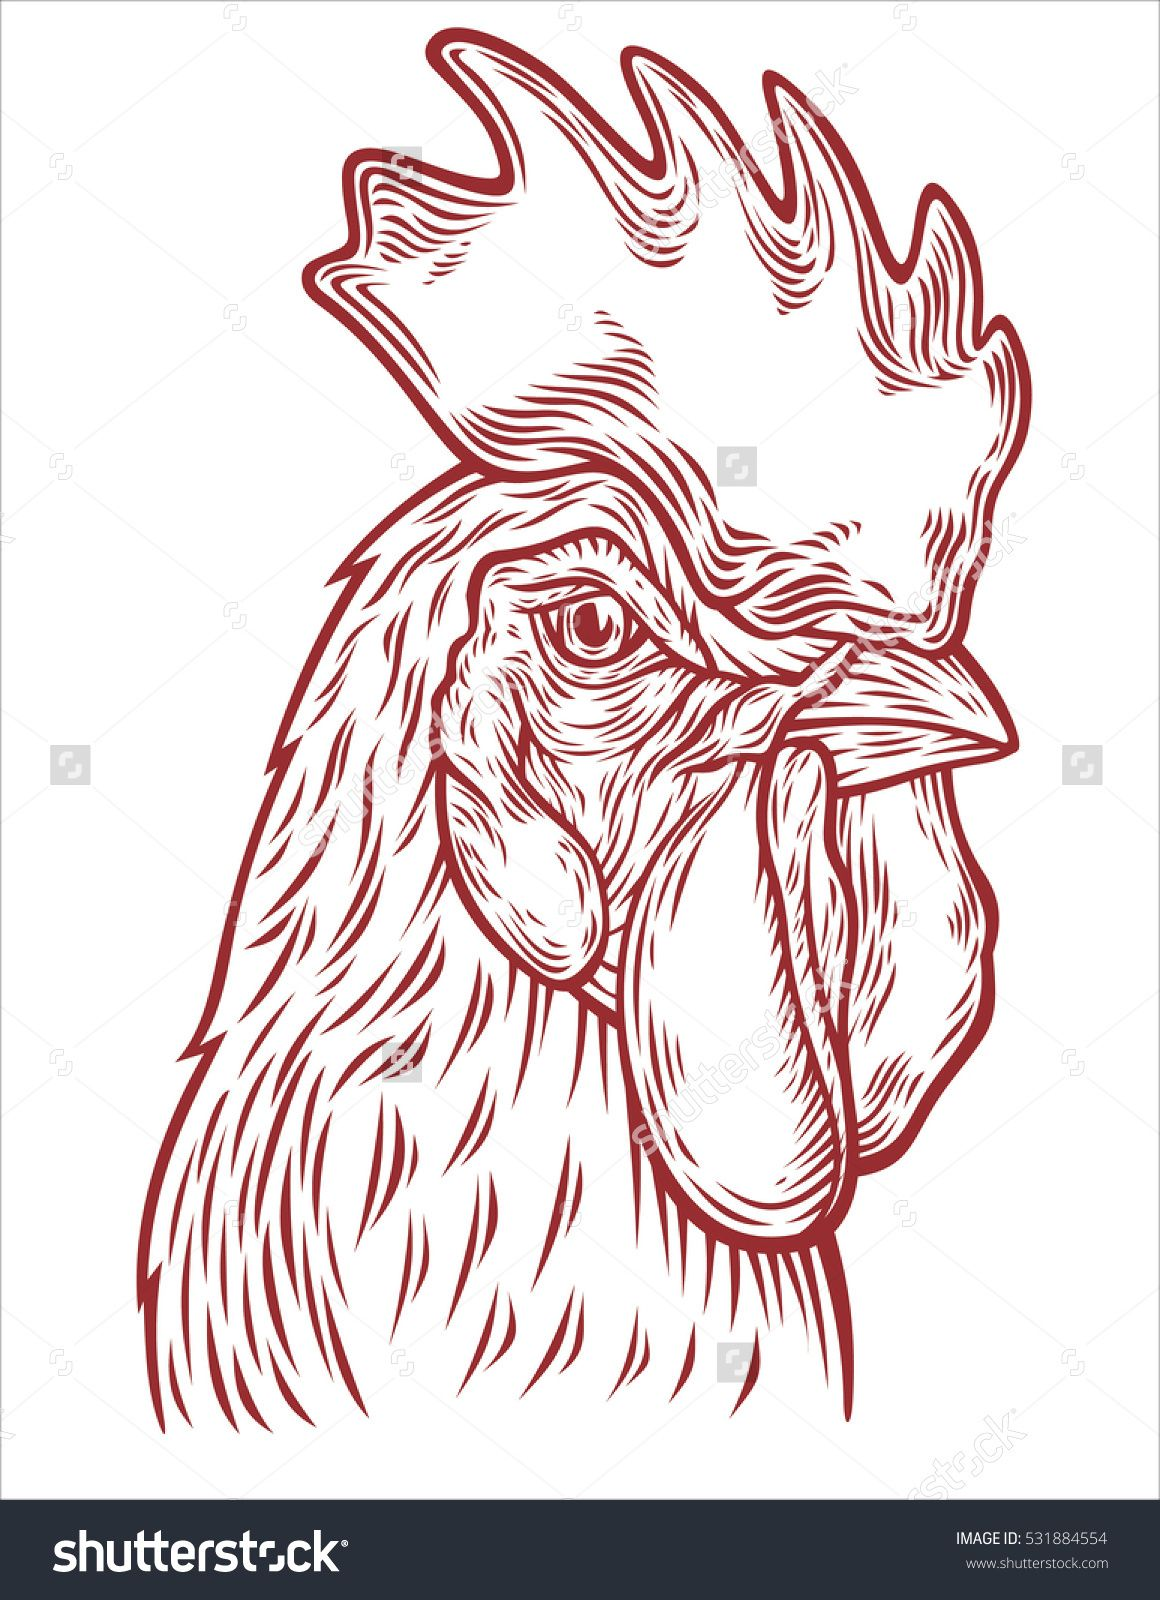 1160x1600 Hand Drawn Rooster Head Vector Illustration. Sketch Chicken